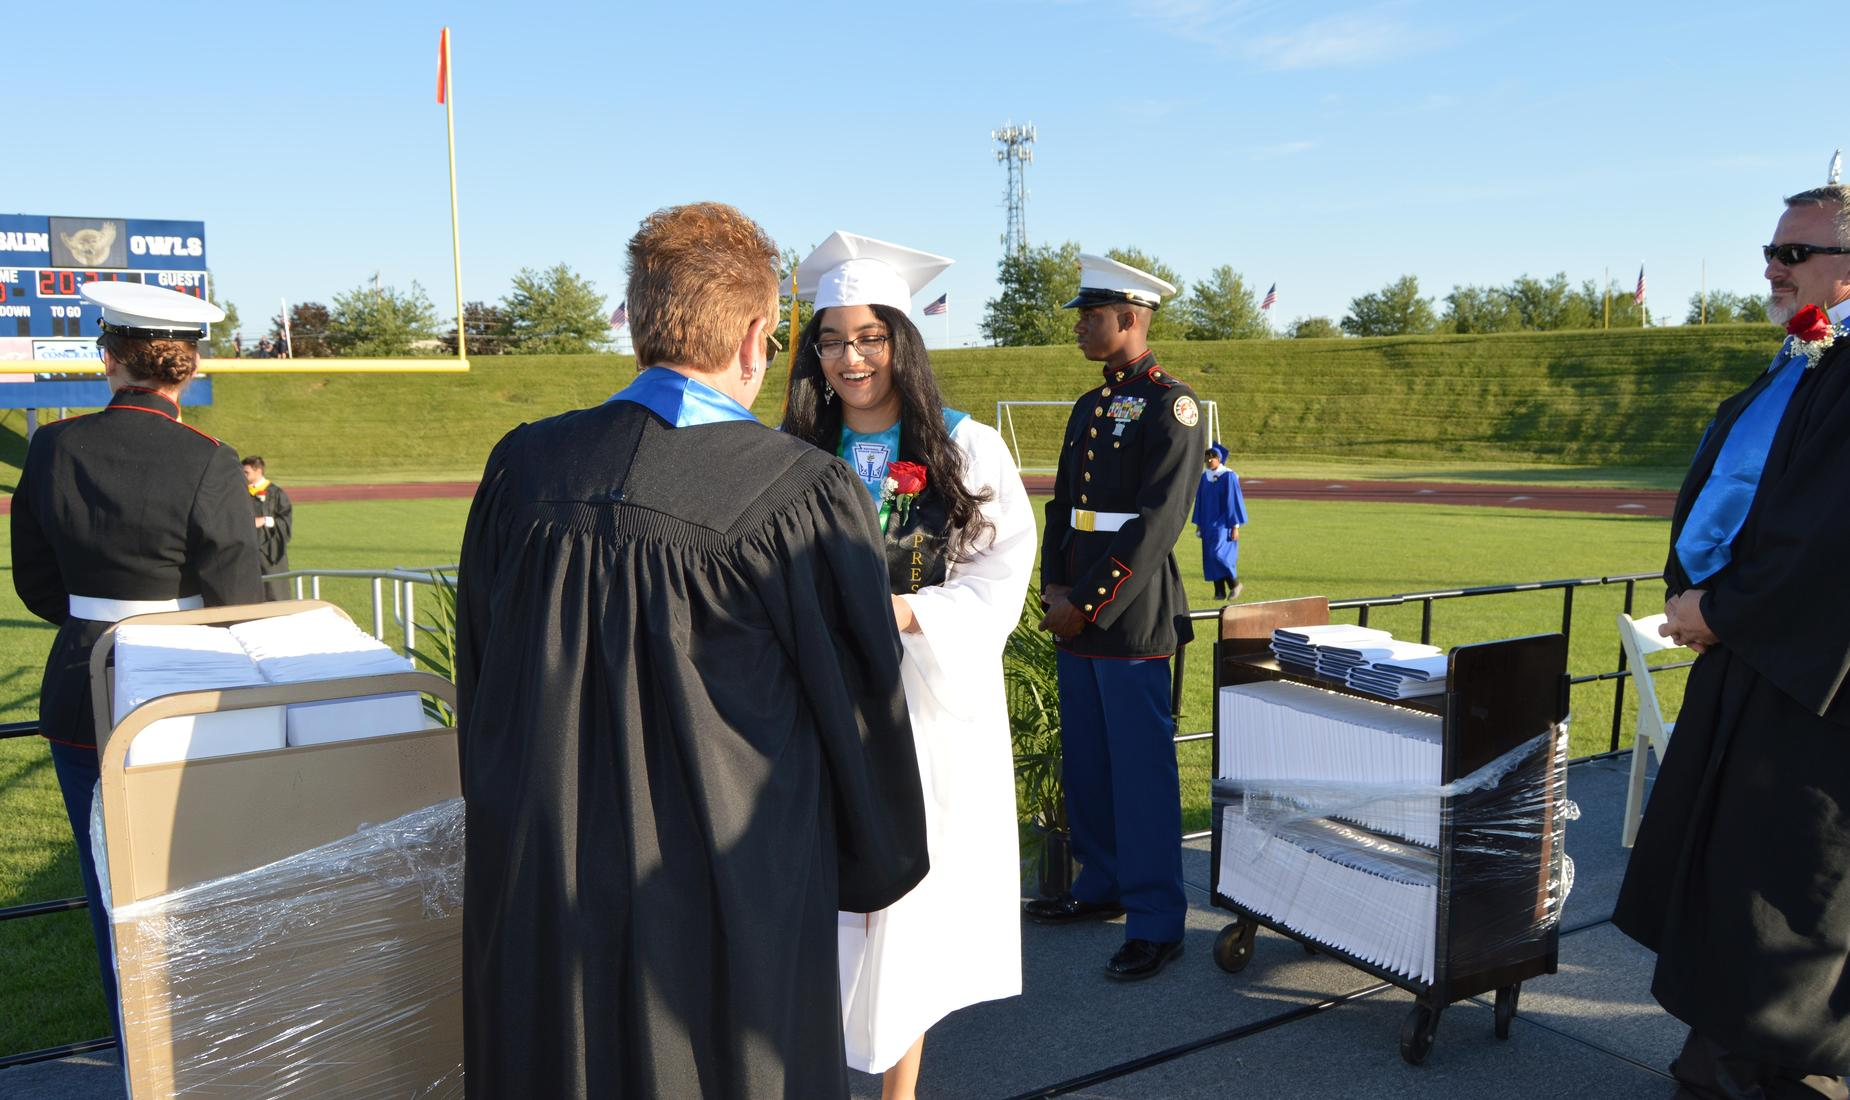 BHS female senior, wearing a white graduation cap and gown receives her diploma